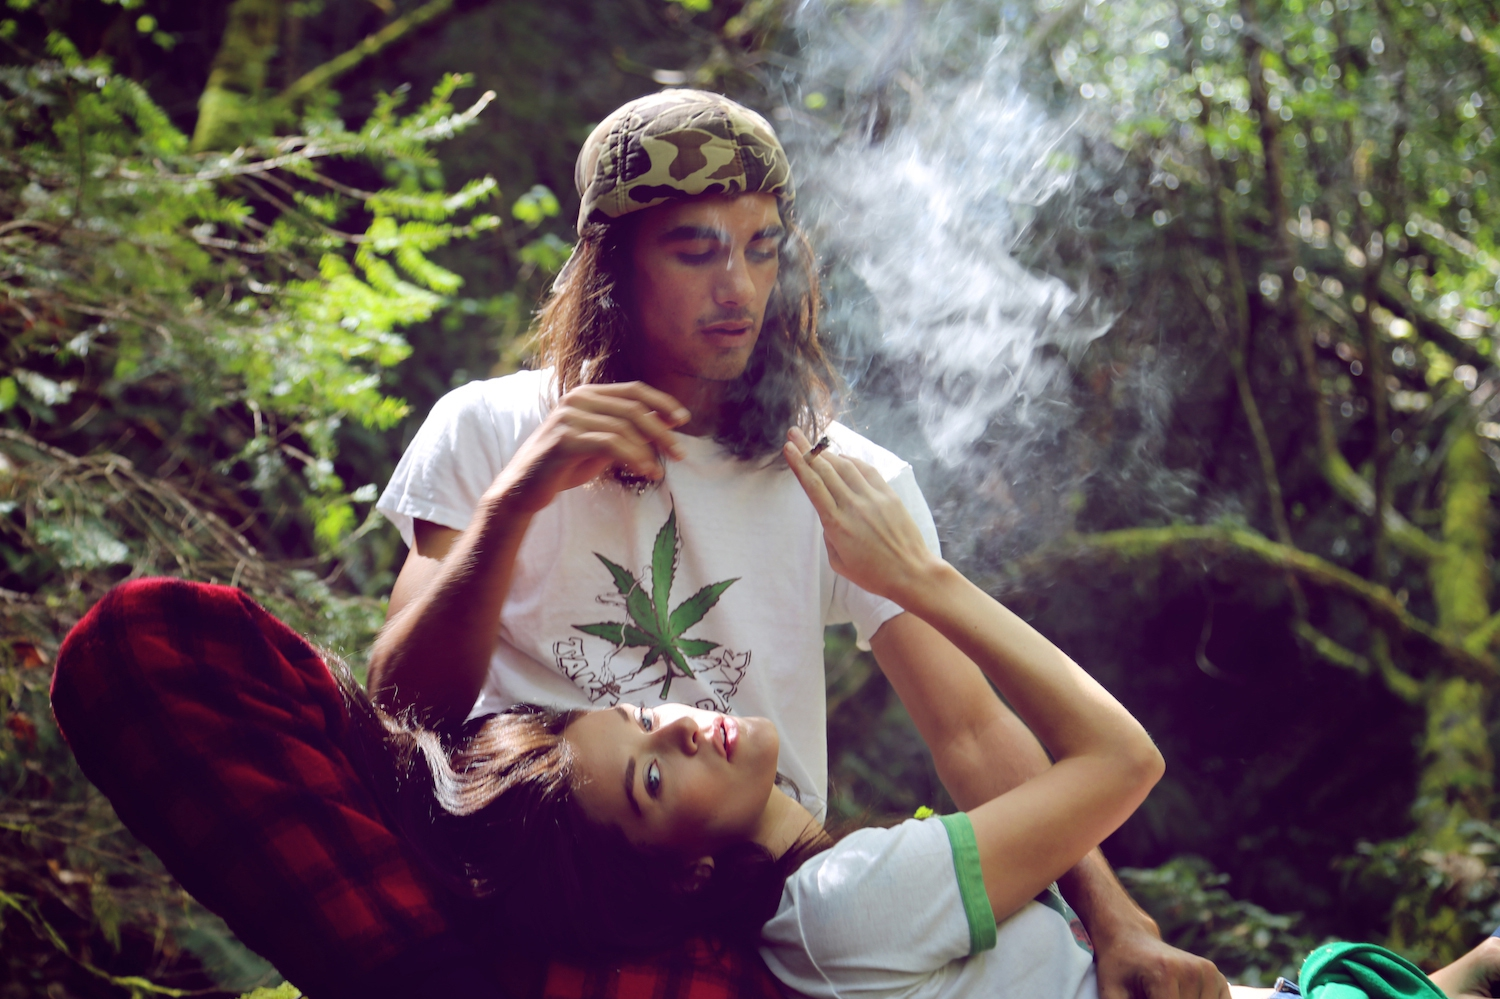 Emerald Triangle, hippie couple, green, eco, humboldt, prop 215, legalization, marijuana, cannabis,millennials, camping, smoking weed, fashion, editorial, high times